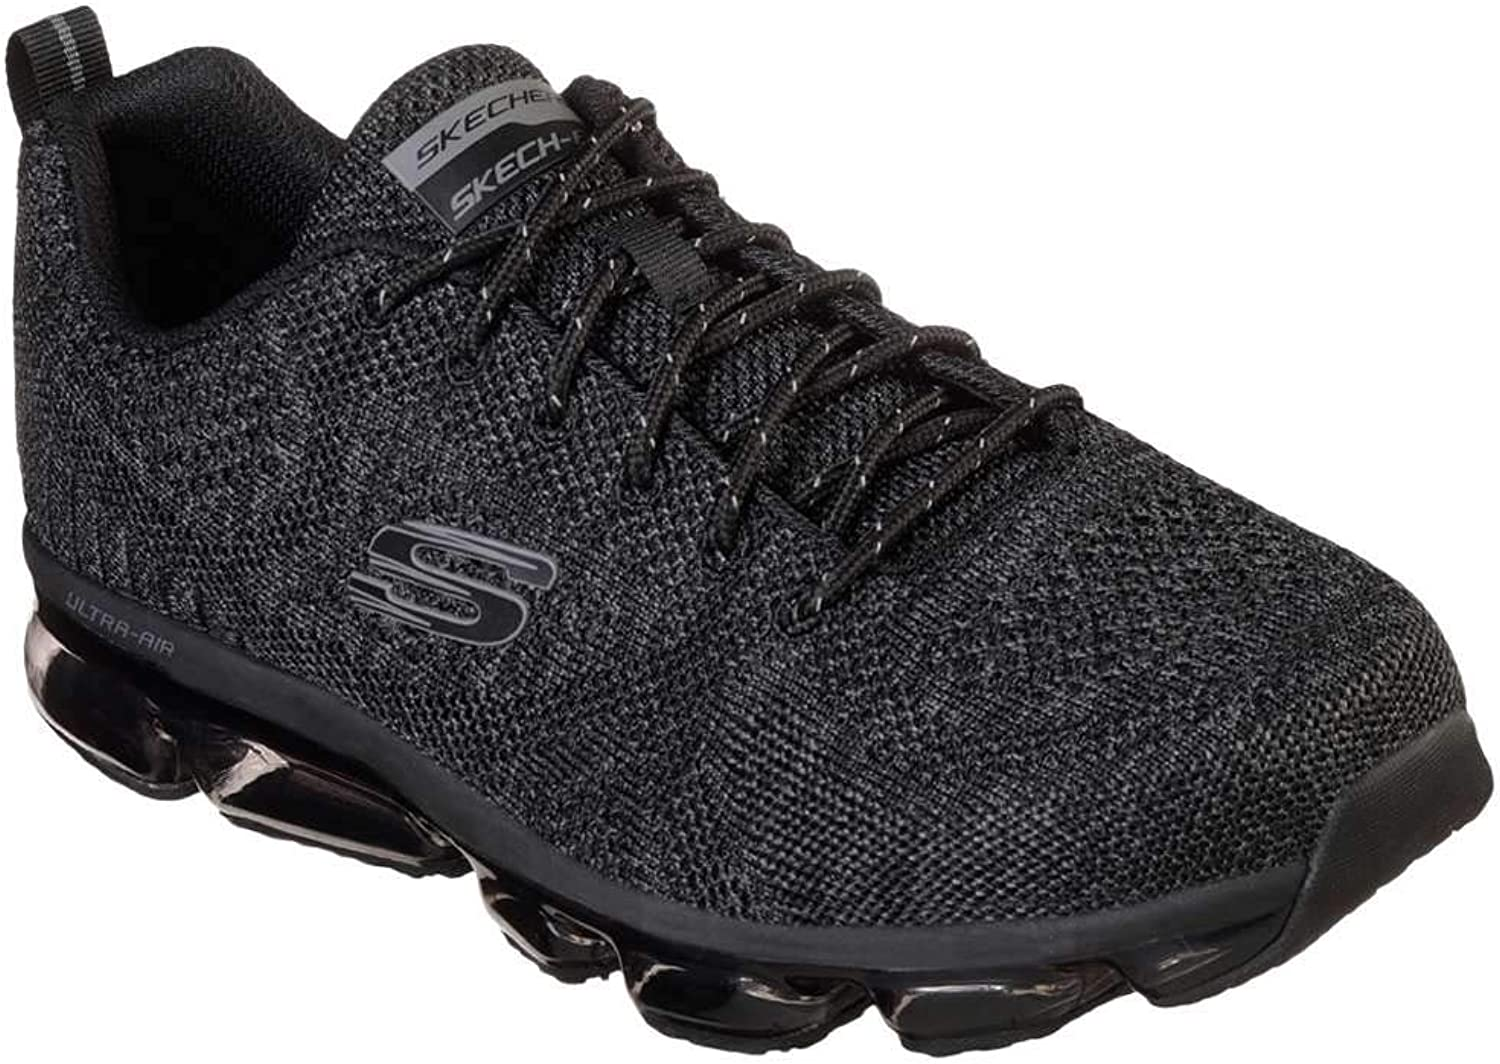 Skechers Performance Men's Go Air Walking shoes